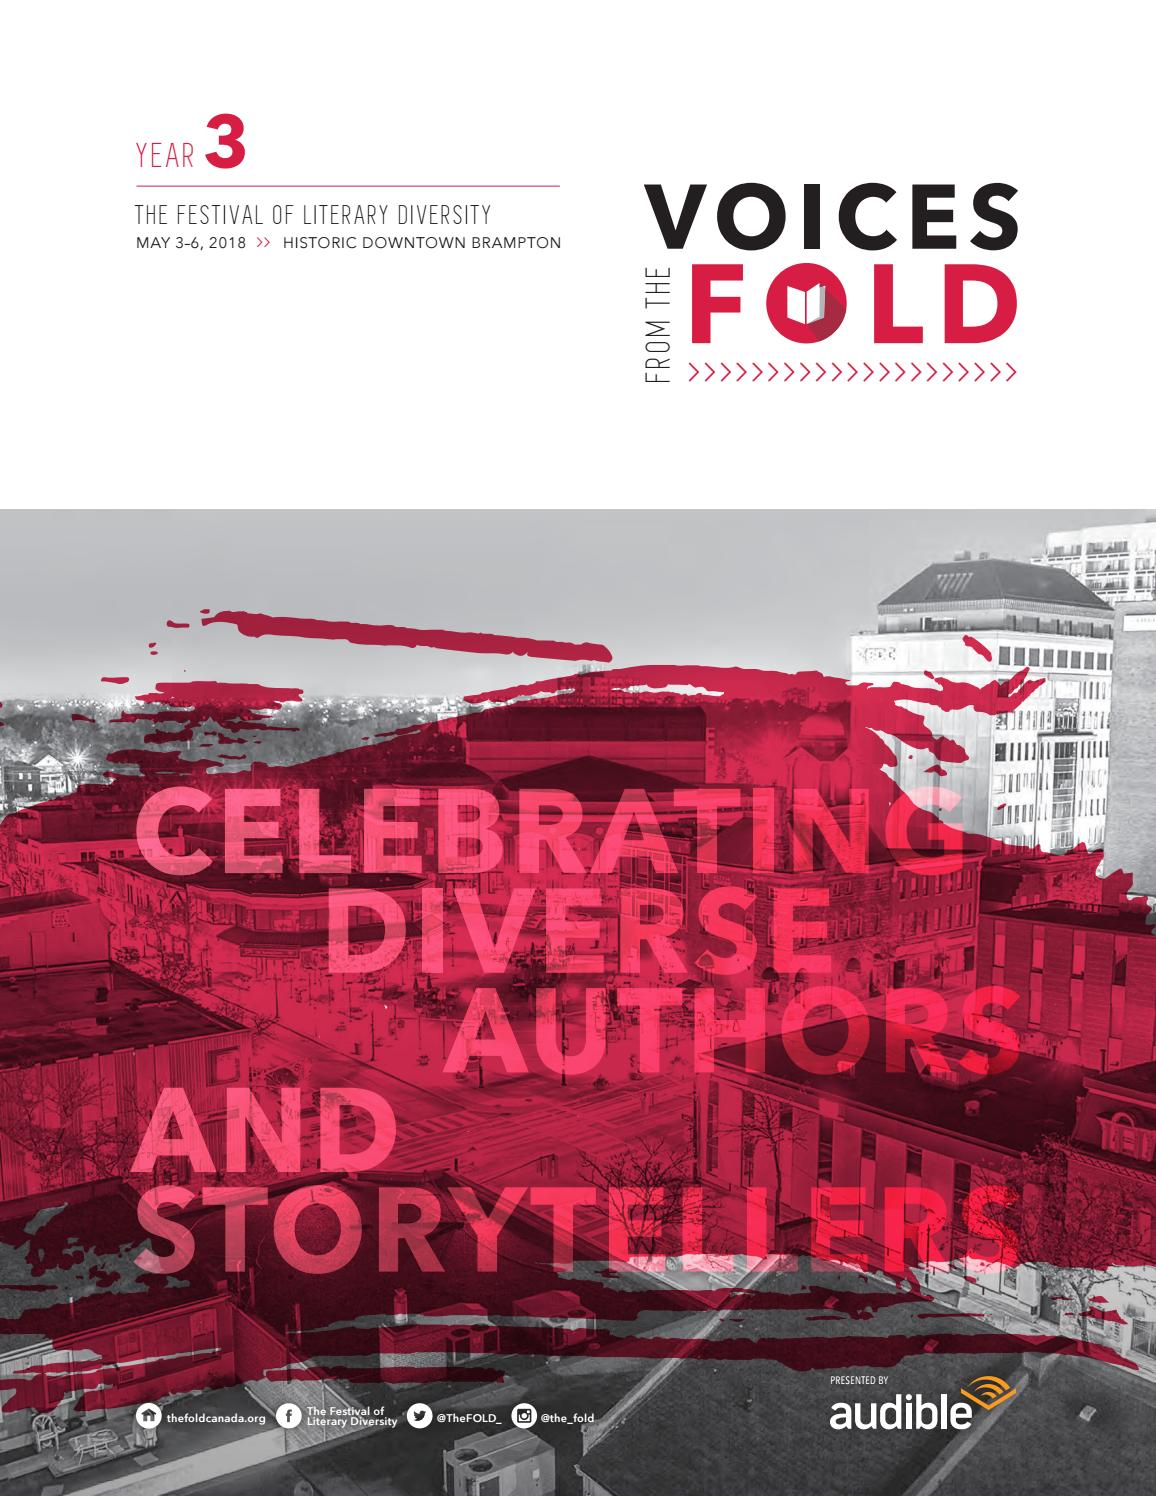 The Festival Of Literary Diversity 2018 Magazineschedule By The